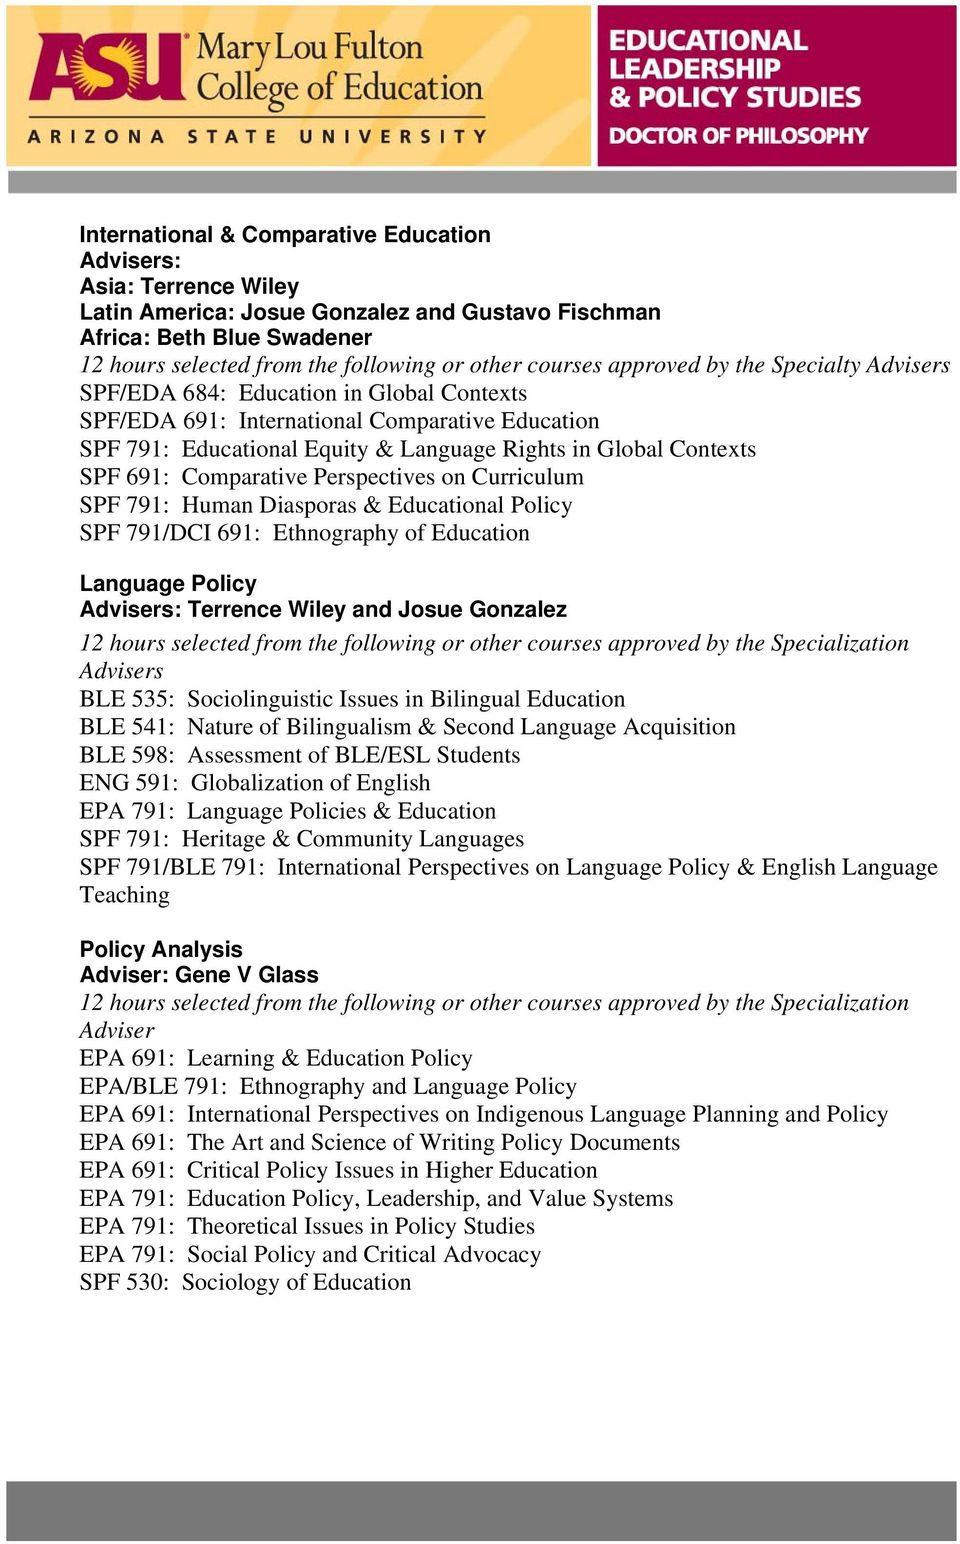 SPF 691: Comparative Perspectives on Curriculum SPF 791: Human Diasporas & Educational Policy SPF 791/DCI 691: Ethnography of Education Language Policy Advisers: Terrence Wiley and Josue Gonzalez 12